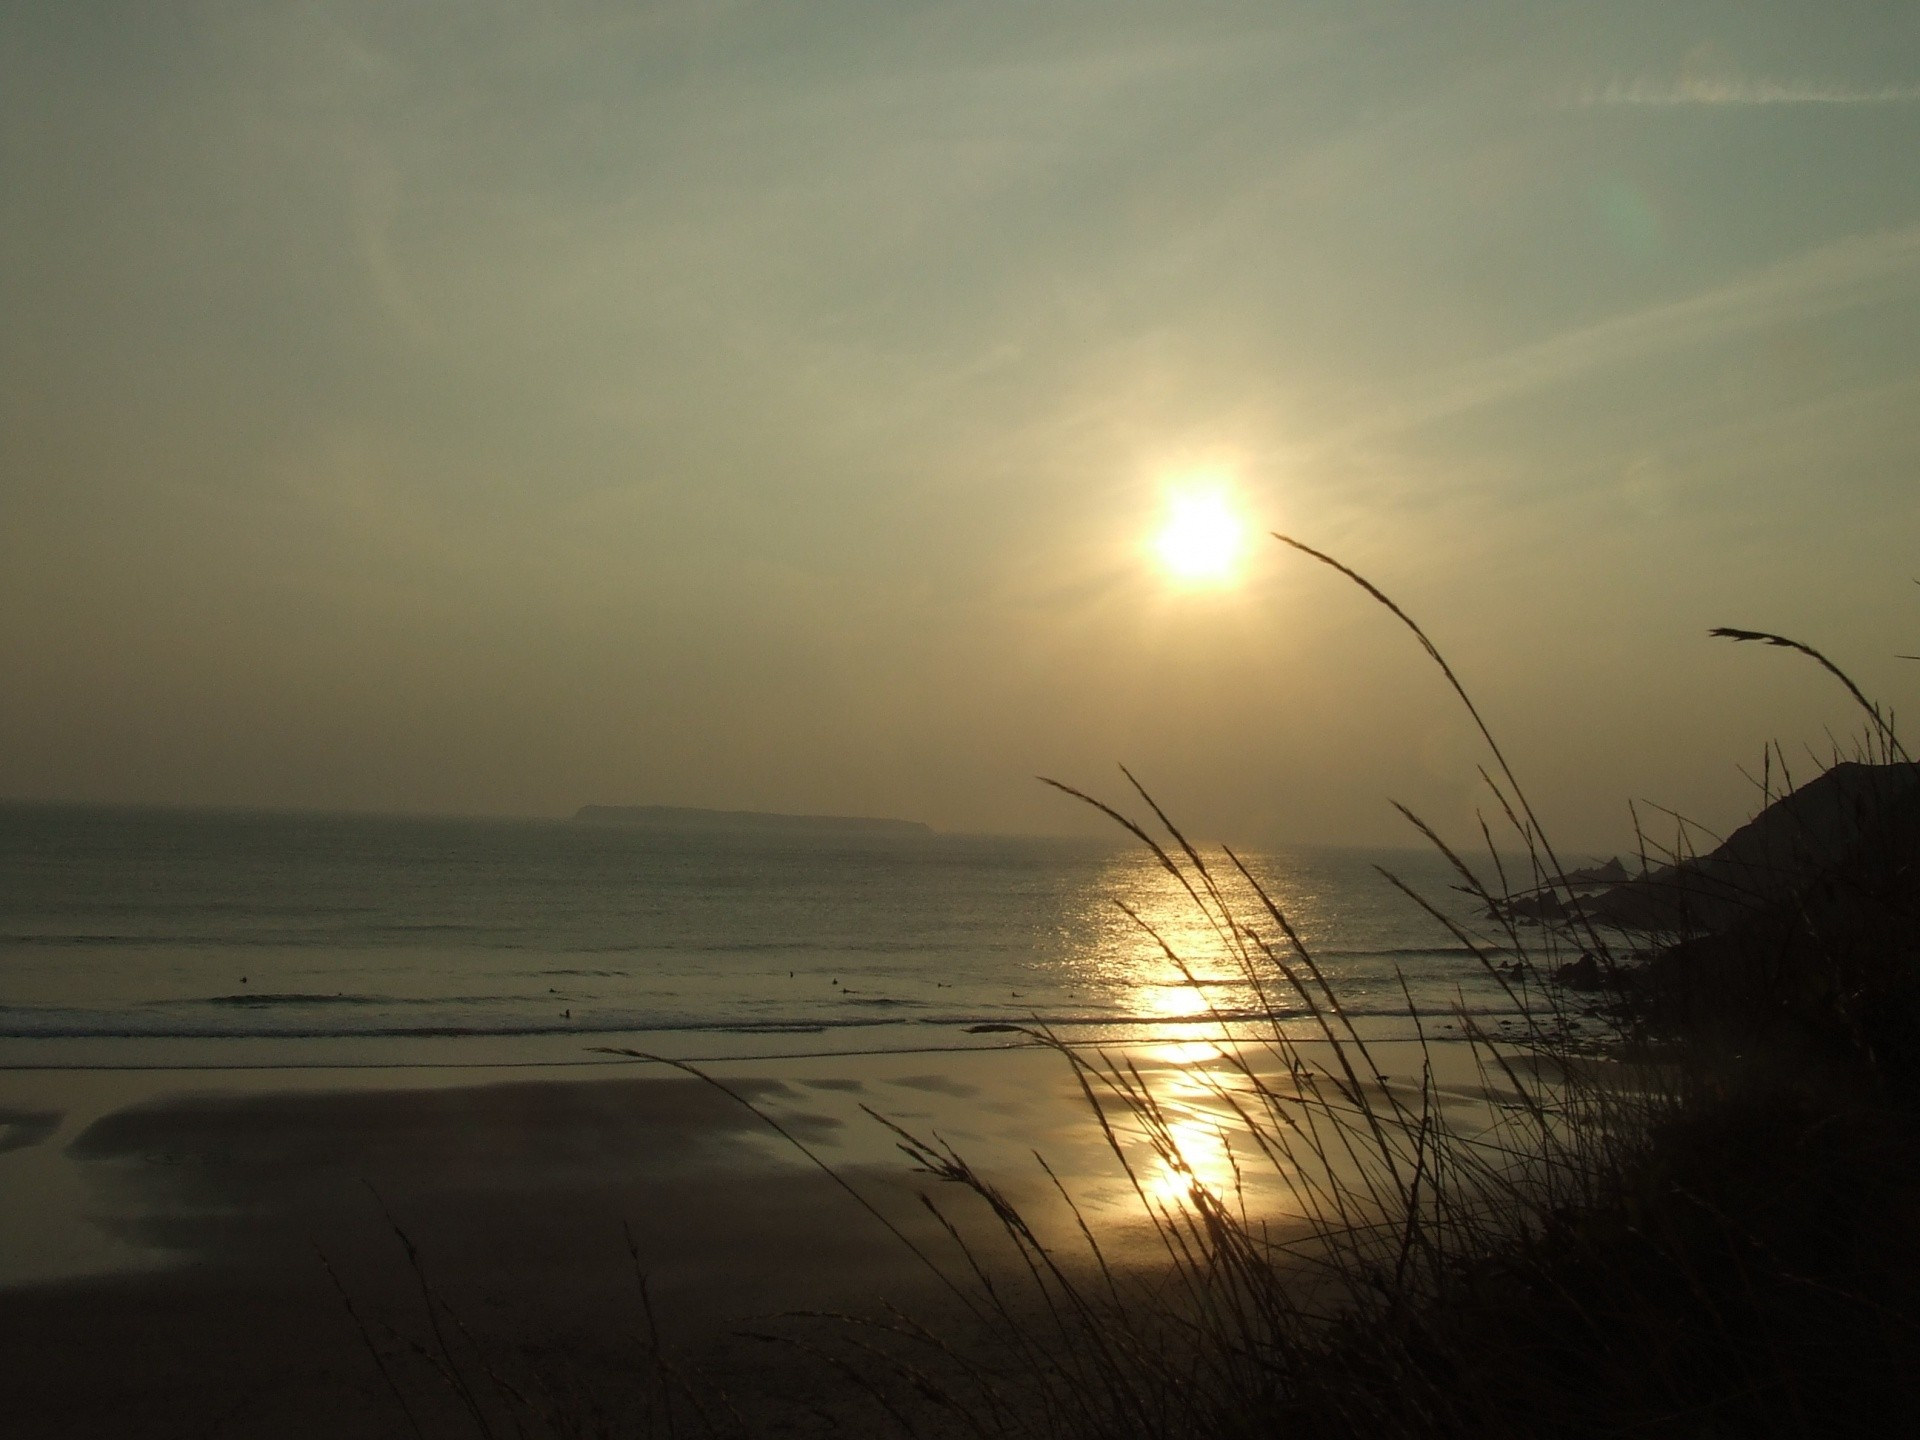 Firefly's photo of Freshwater West